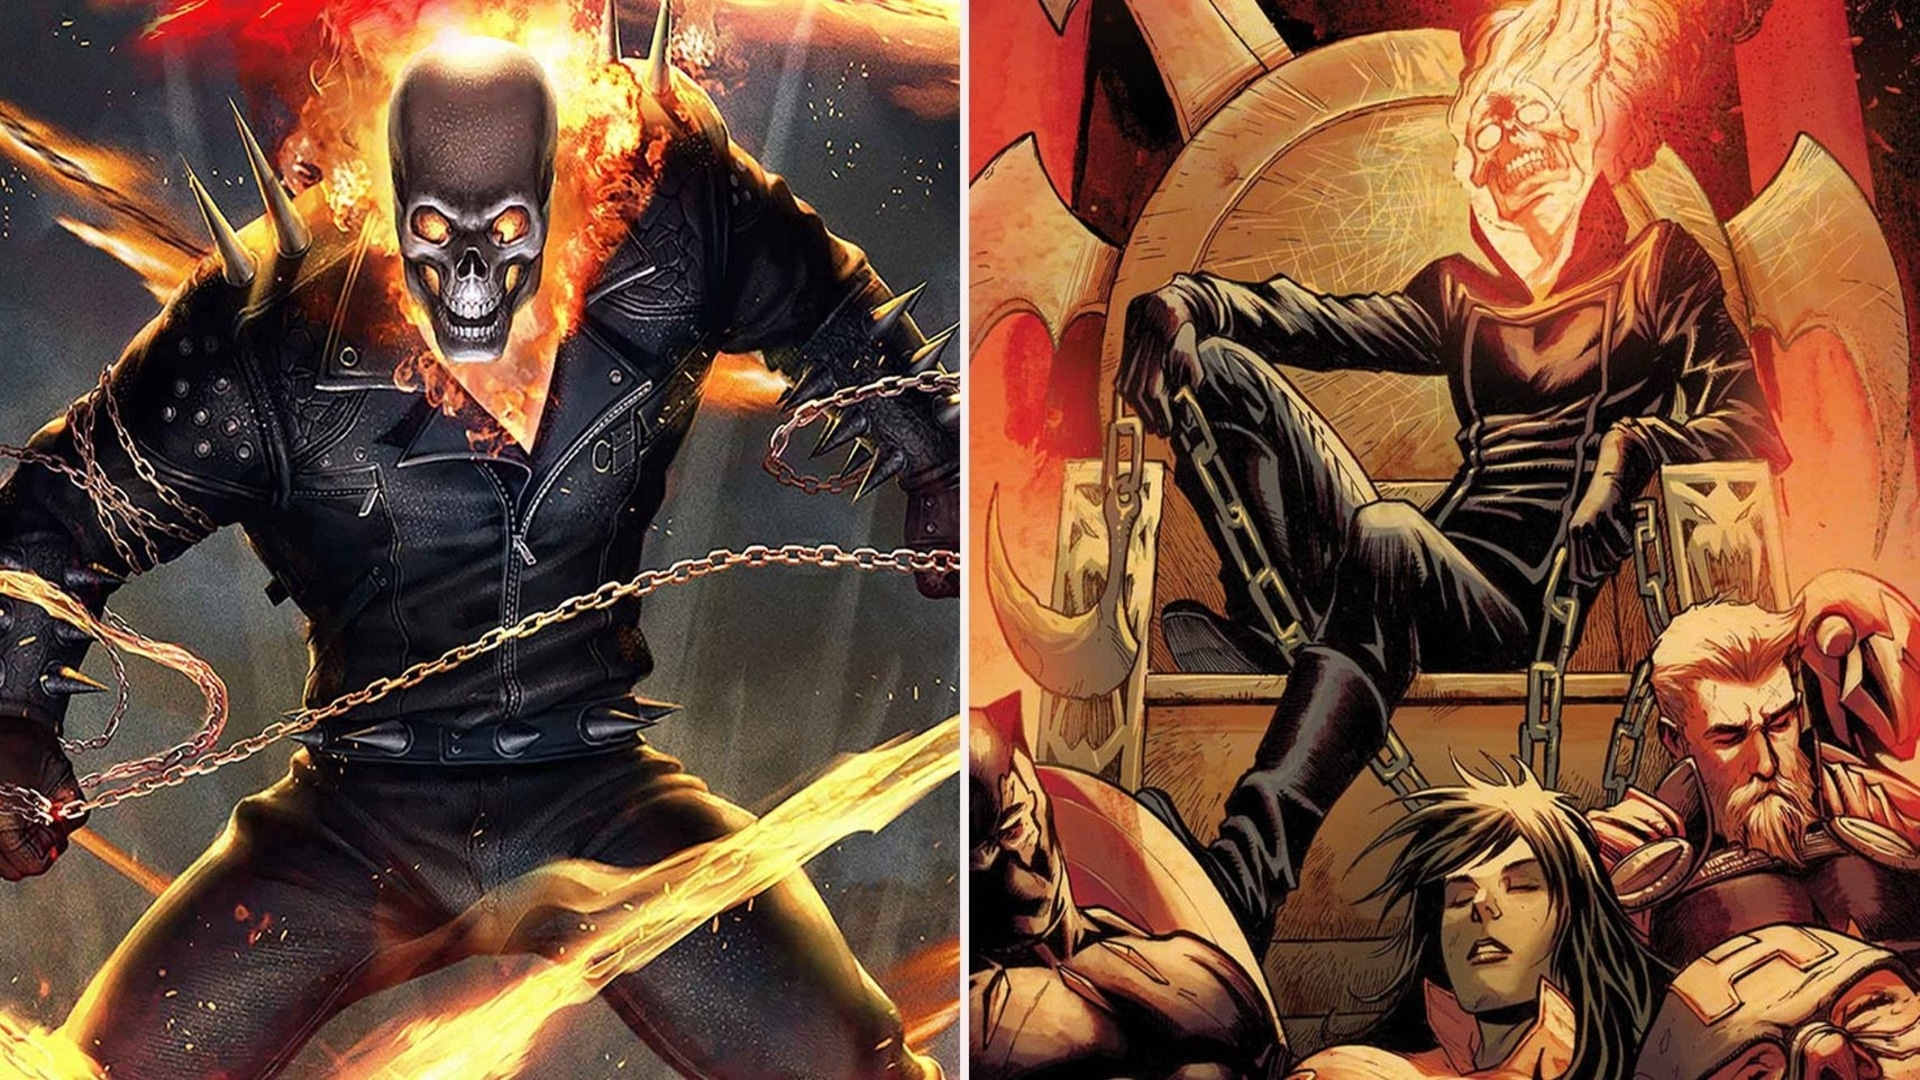 Ghost Rider is likely to be part of Marvel:Crisis Protocol